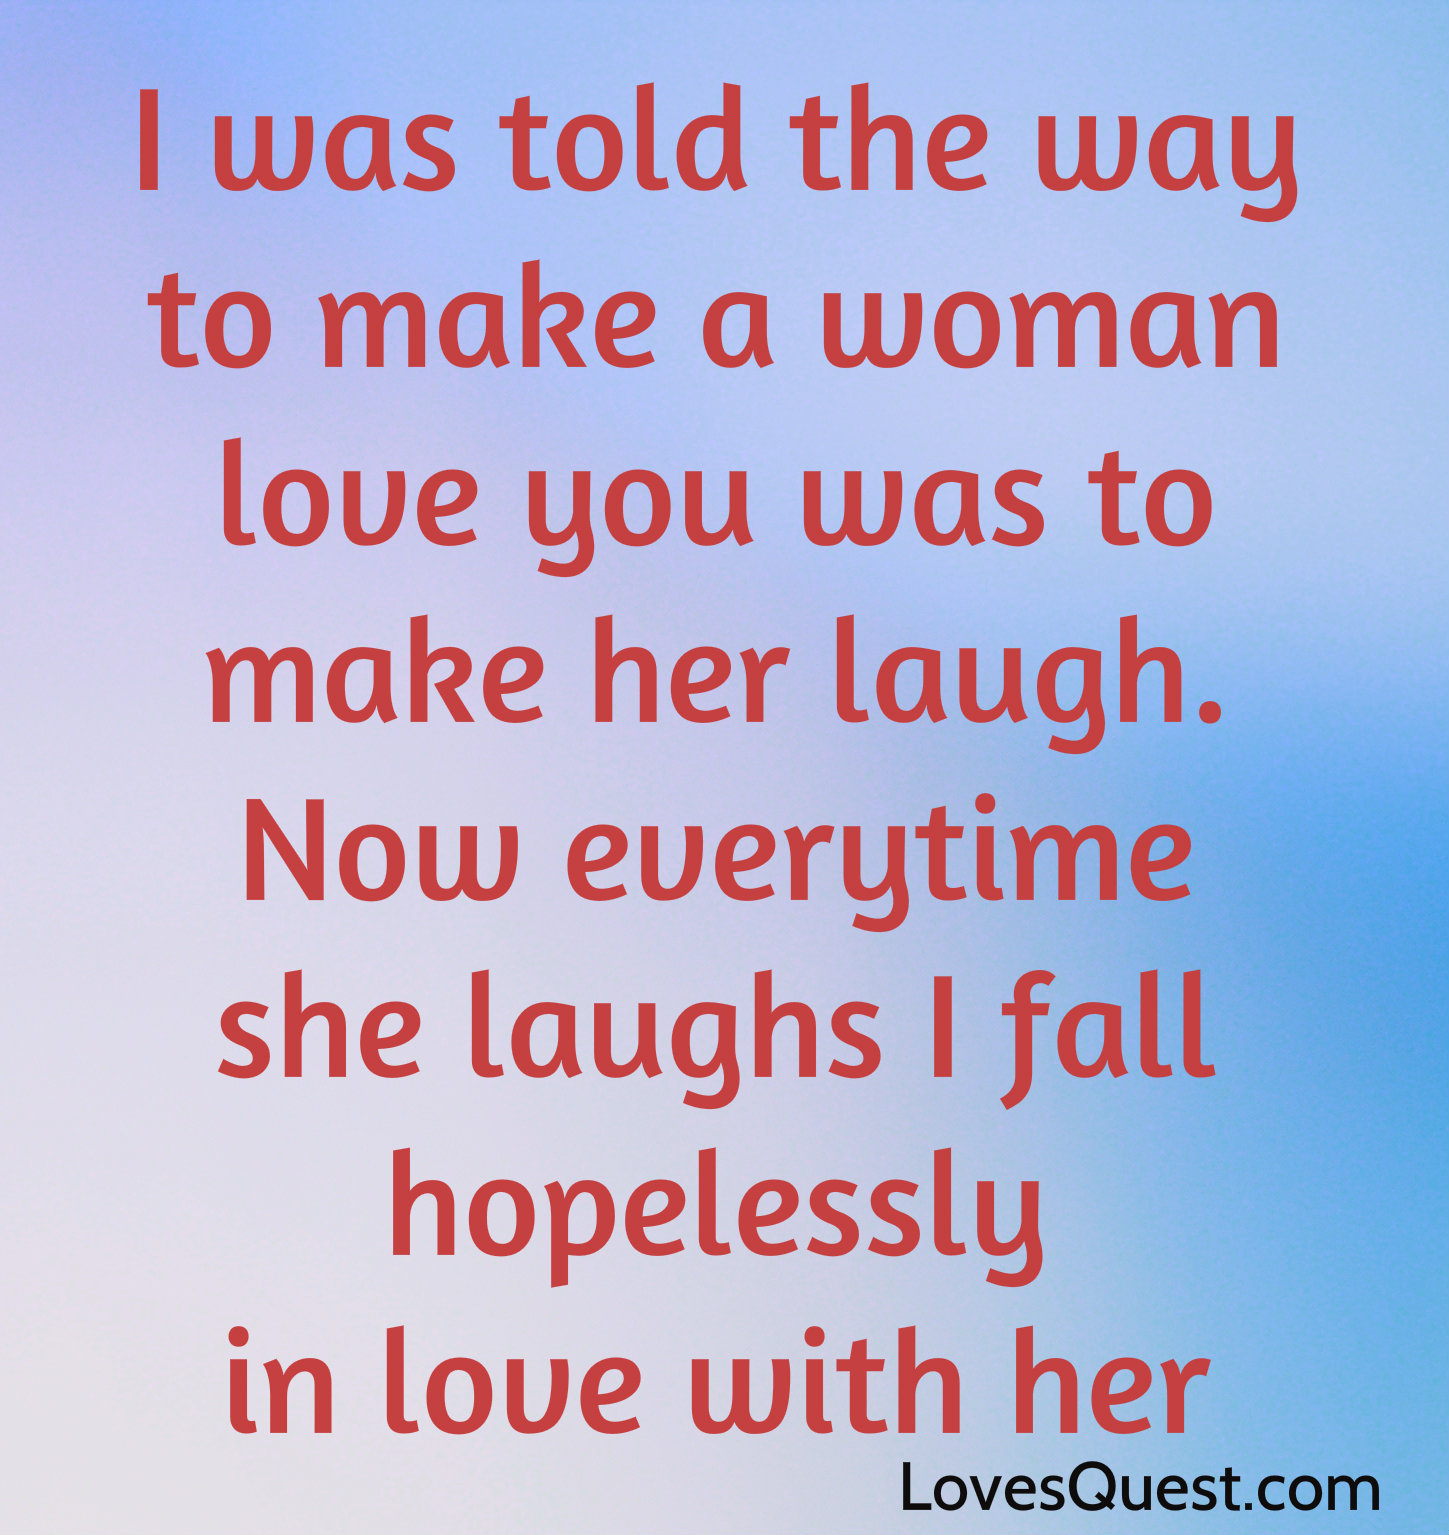 Quotes To Make Her Fall In Love: Make Her Laugh Quotes. QuotesGram